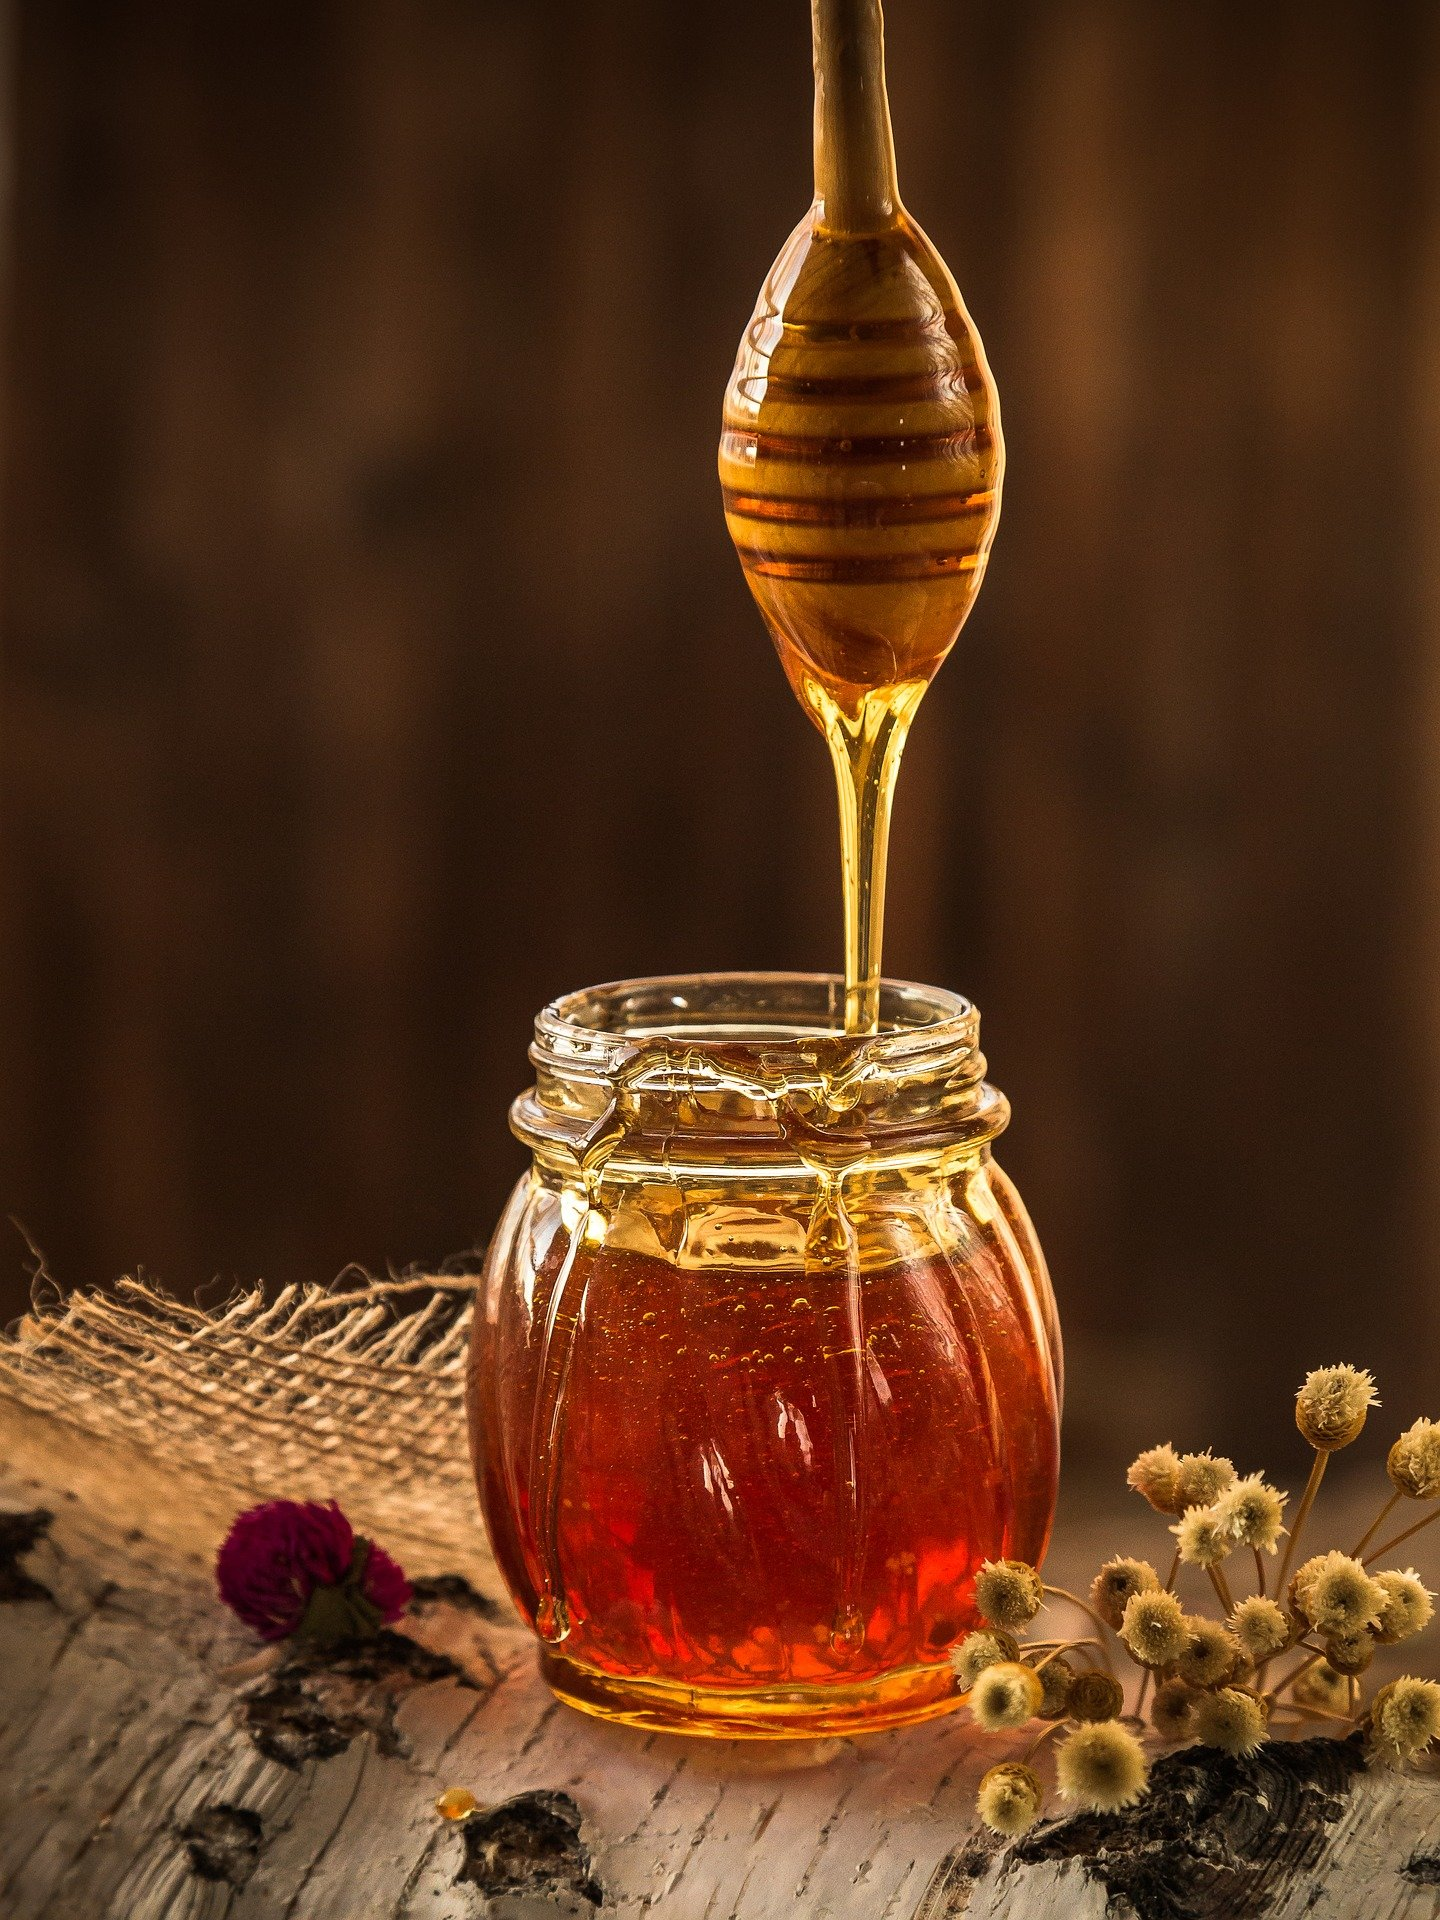 One in five Australian honey samples adulterated